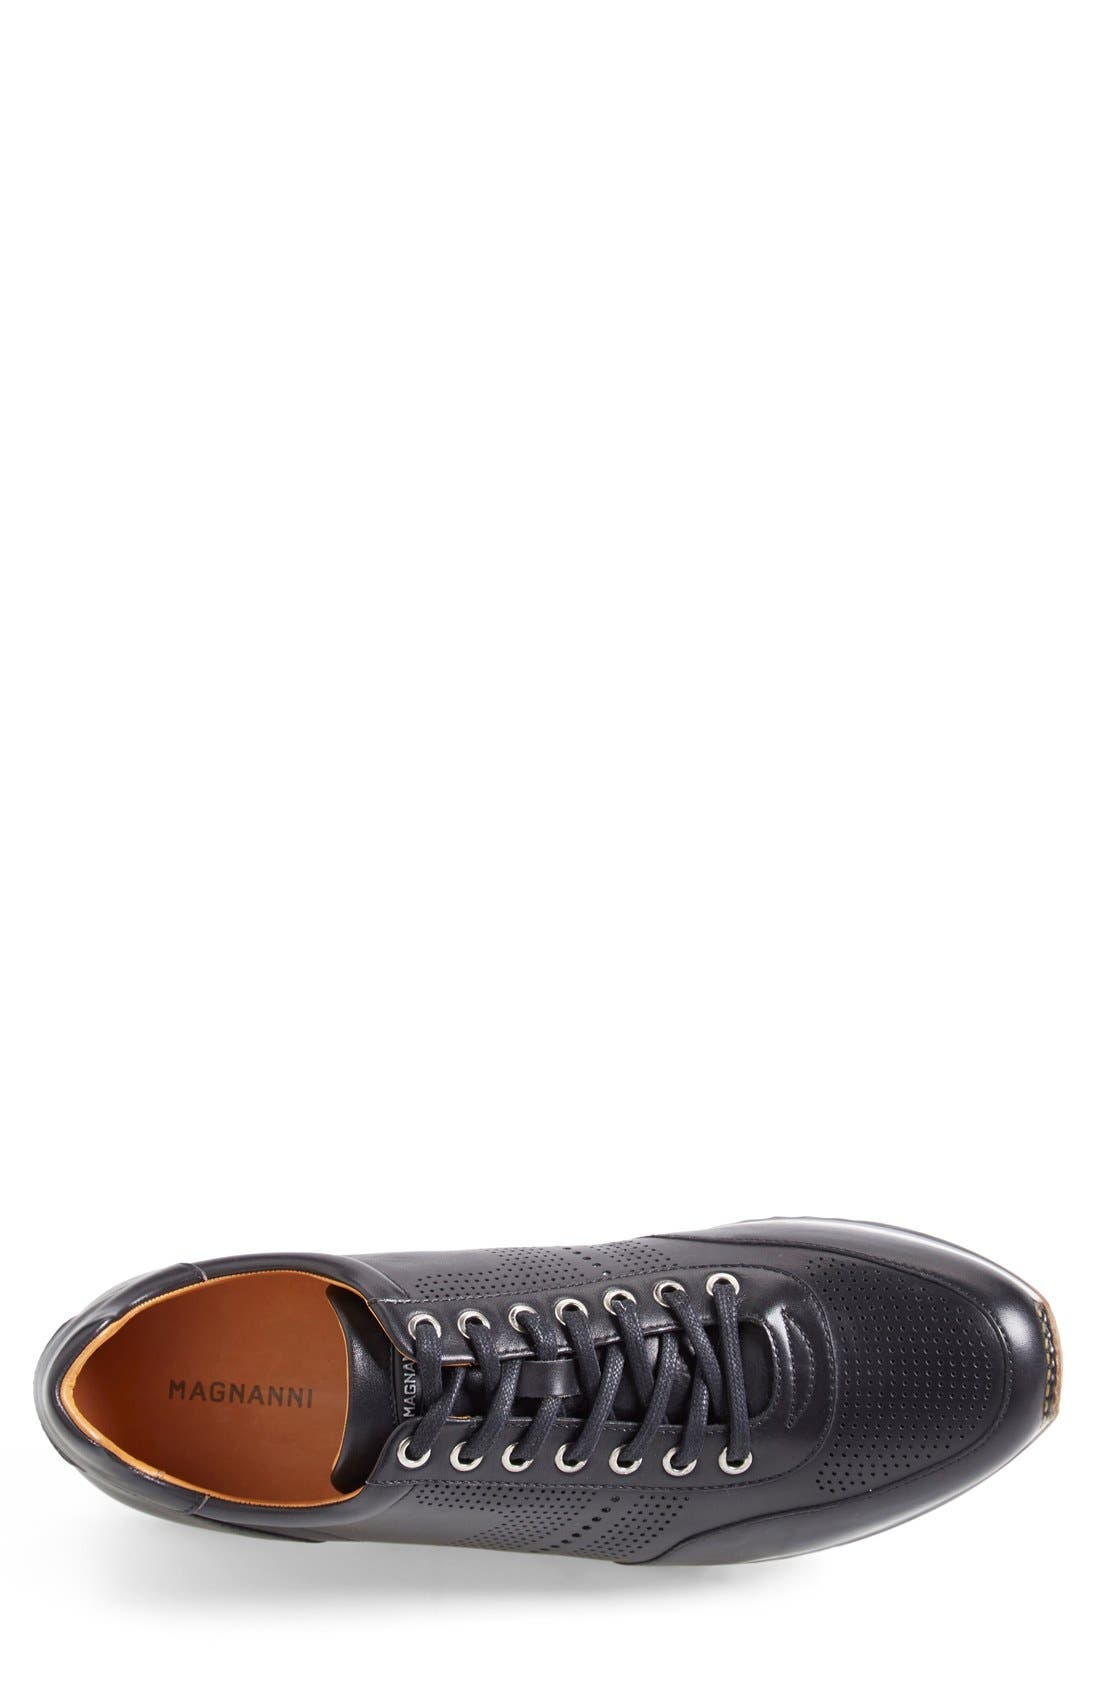 Alternate Image 3  - Magnanni 'Pueblo' Sneaker (Men)